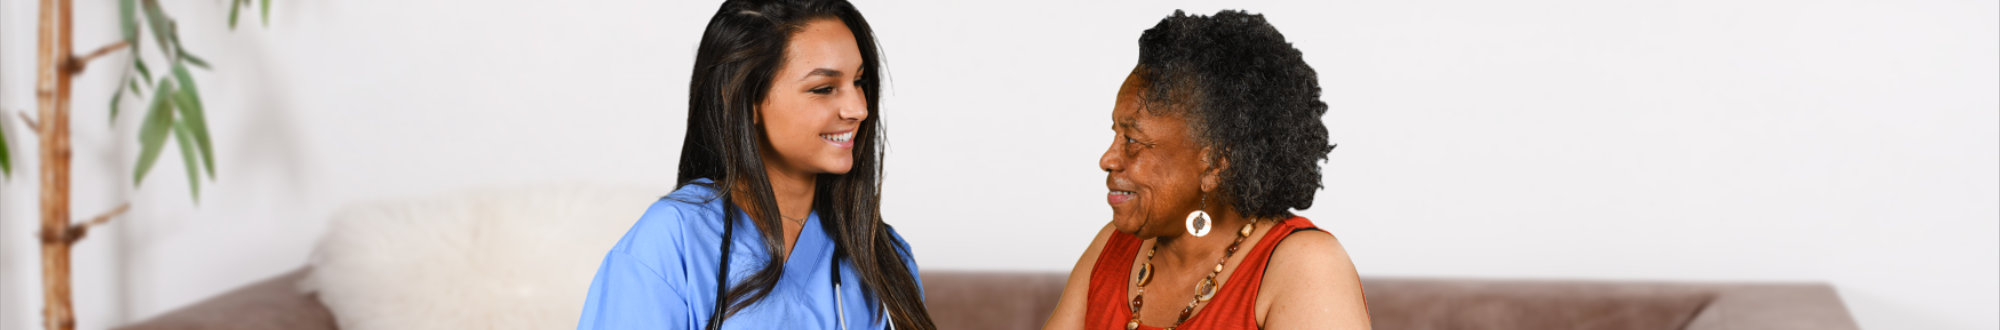 caregiver and a senior woman talking